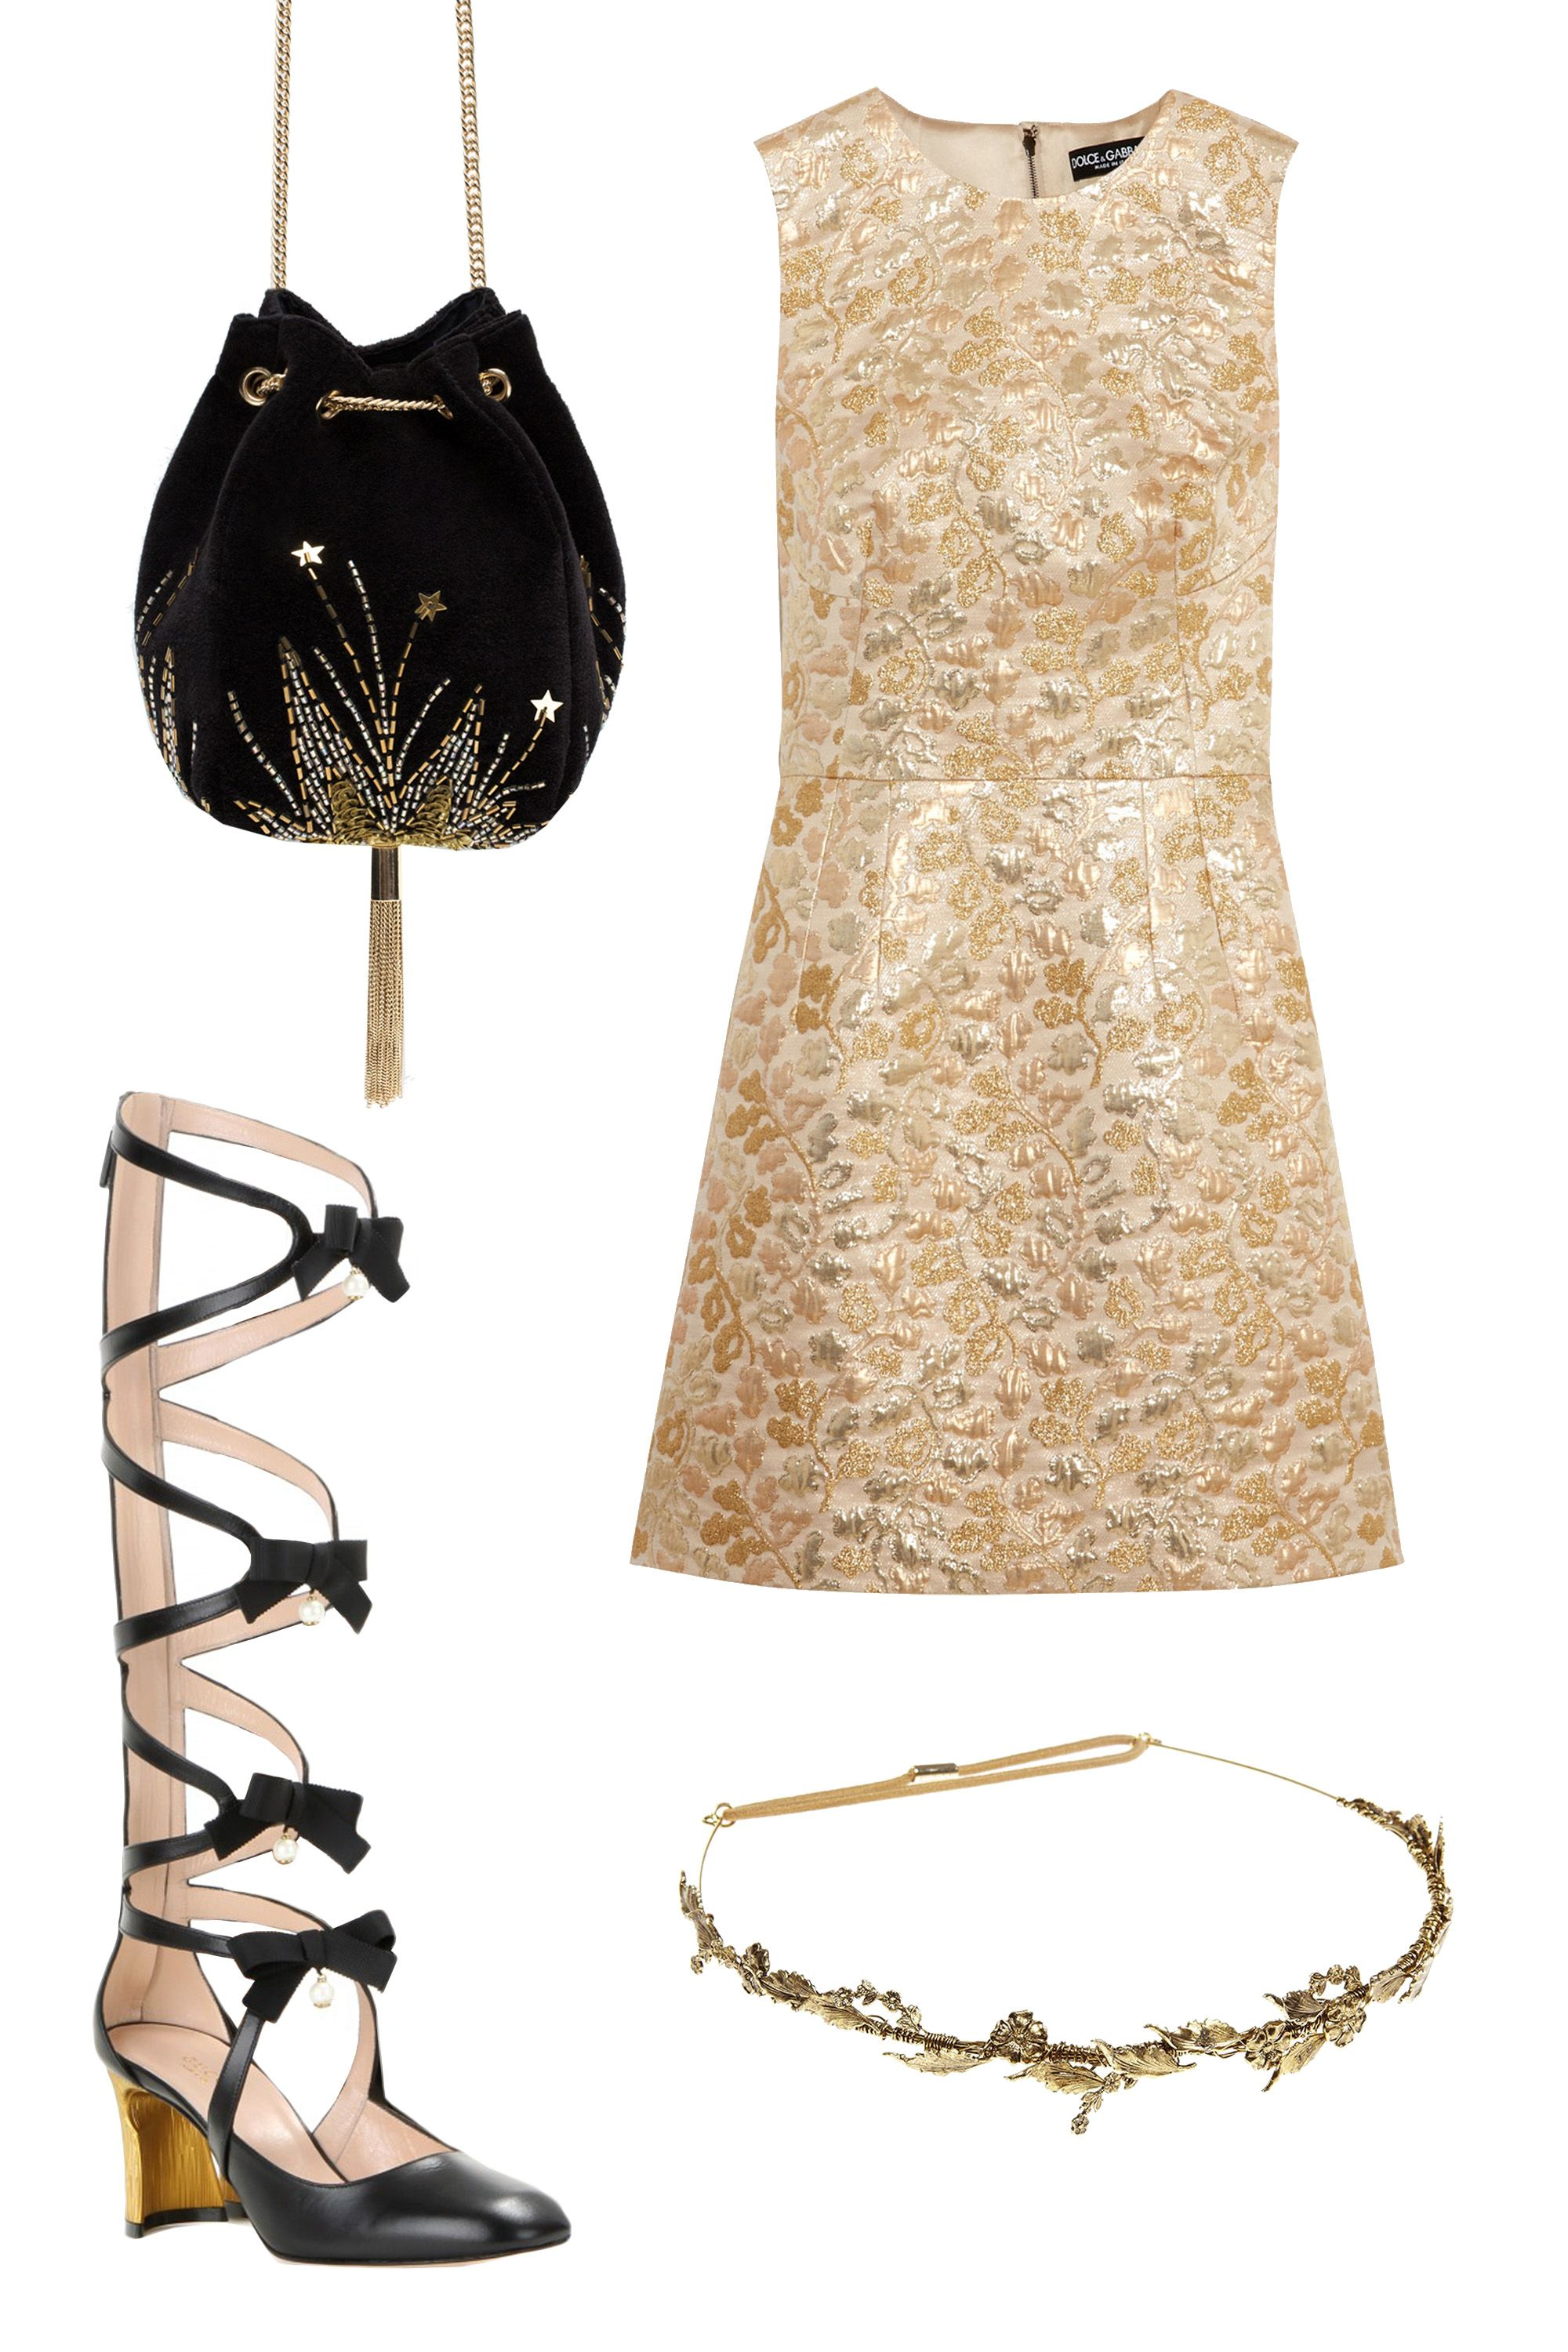 "<p>Now this is where you should experiment, and we're not just talking about drinking those questionable cocktails your BFF just mixed in the corner. Honestly, there aren't many occasions to wear a laurel leaf tiara, but you know your friends will appreciate it. </p><p>Dolce & Gabbana Metallic Brocade Mini Dress, $2,295; <u><a href=""http://www.net-a-porter.com/us/en/product/644449/dolce___gabbana/metallic-brocade-mini-dress"" target=""_blank"">net-a-porter.com</a></u><br></p><p><u><a href=""http://www.net-a-porter.com/us/en/product/644449/dolce___gabbana/metallic-brocade-mini-dress""></a></u>Gucci Embellished Cut-Out Boots, $2,300; <a href=""http://www.mytheresa.com/en-us/embellished-cut-out-boots.html?catref=category"" target=""_blank""><u>mytheresa.com</u></a></p><p>Zara Velvet Evening Bucket Bag, $50; <a href=""http://www.zara.com/us/en/woman/bags/view-all/velvet-evening-bucket-bag-c734144p3141014.html"" target=""_blank""><u>zara.com</u></a></p><p>Jennifer Behr Delicate Laurel Leaf Bandeaux, $298; <u><a href=""http://www.jenniferbehr.com/catalog/product/view/id/4315/s/delicate-laurel-leaf-bandeaux/"" target=""_blank"">jenniferbehr.com</a></u></p>"